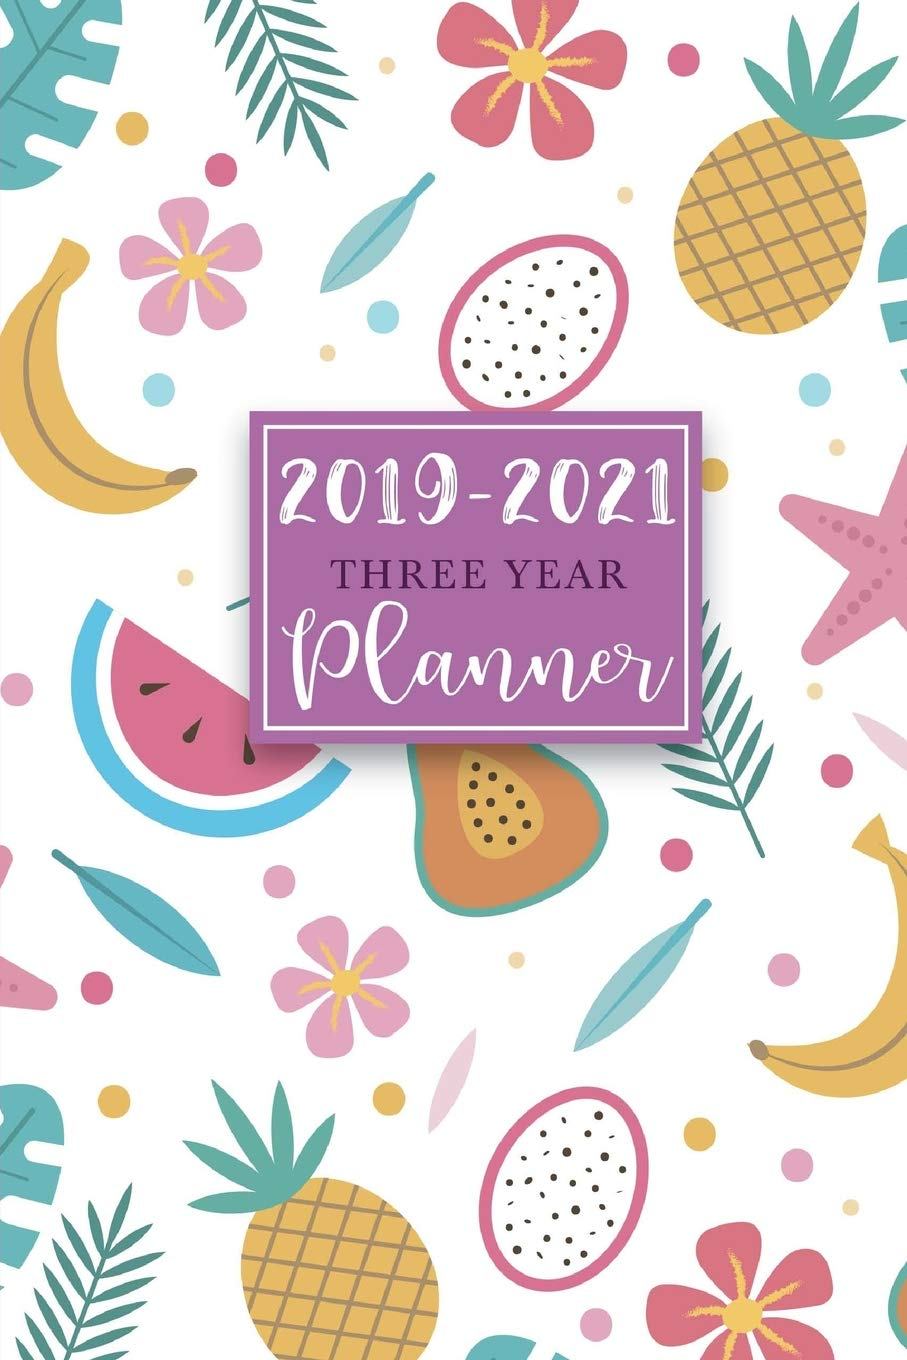 Planner clipart diary dates.  three year months